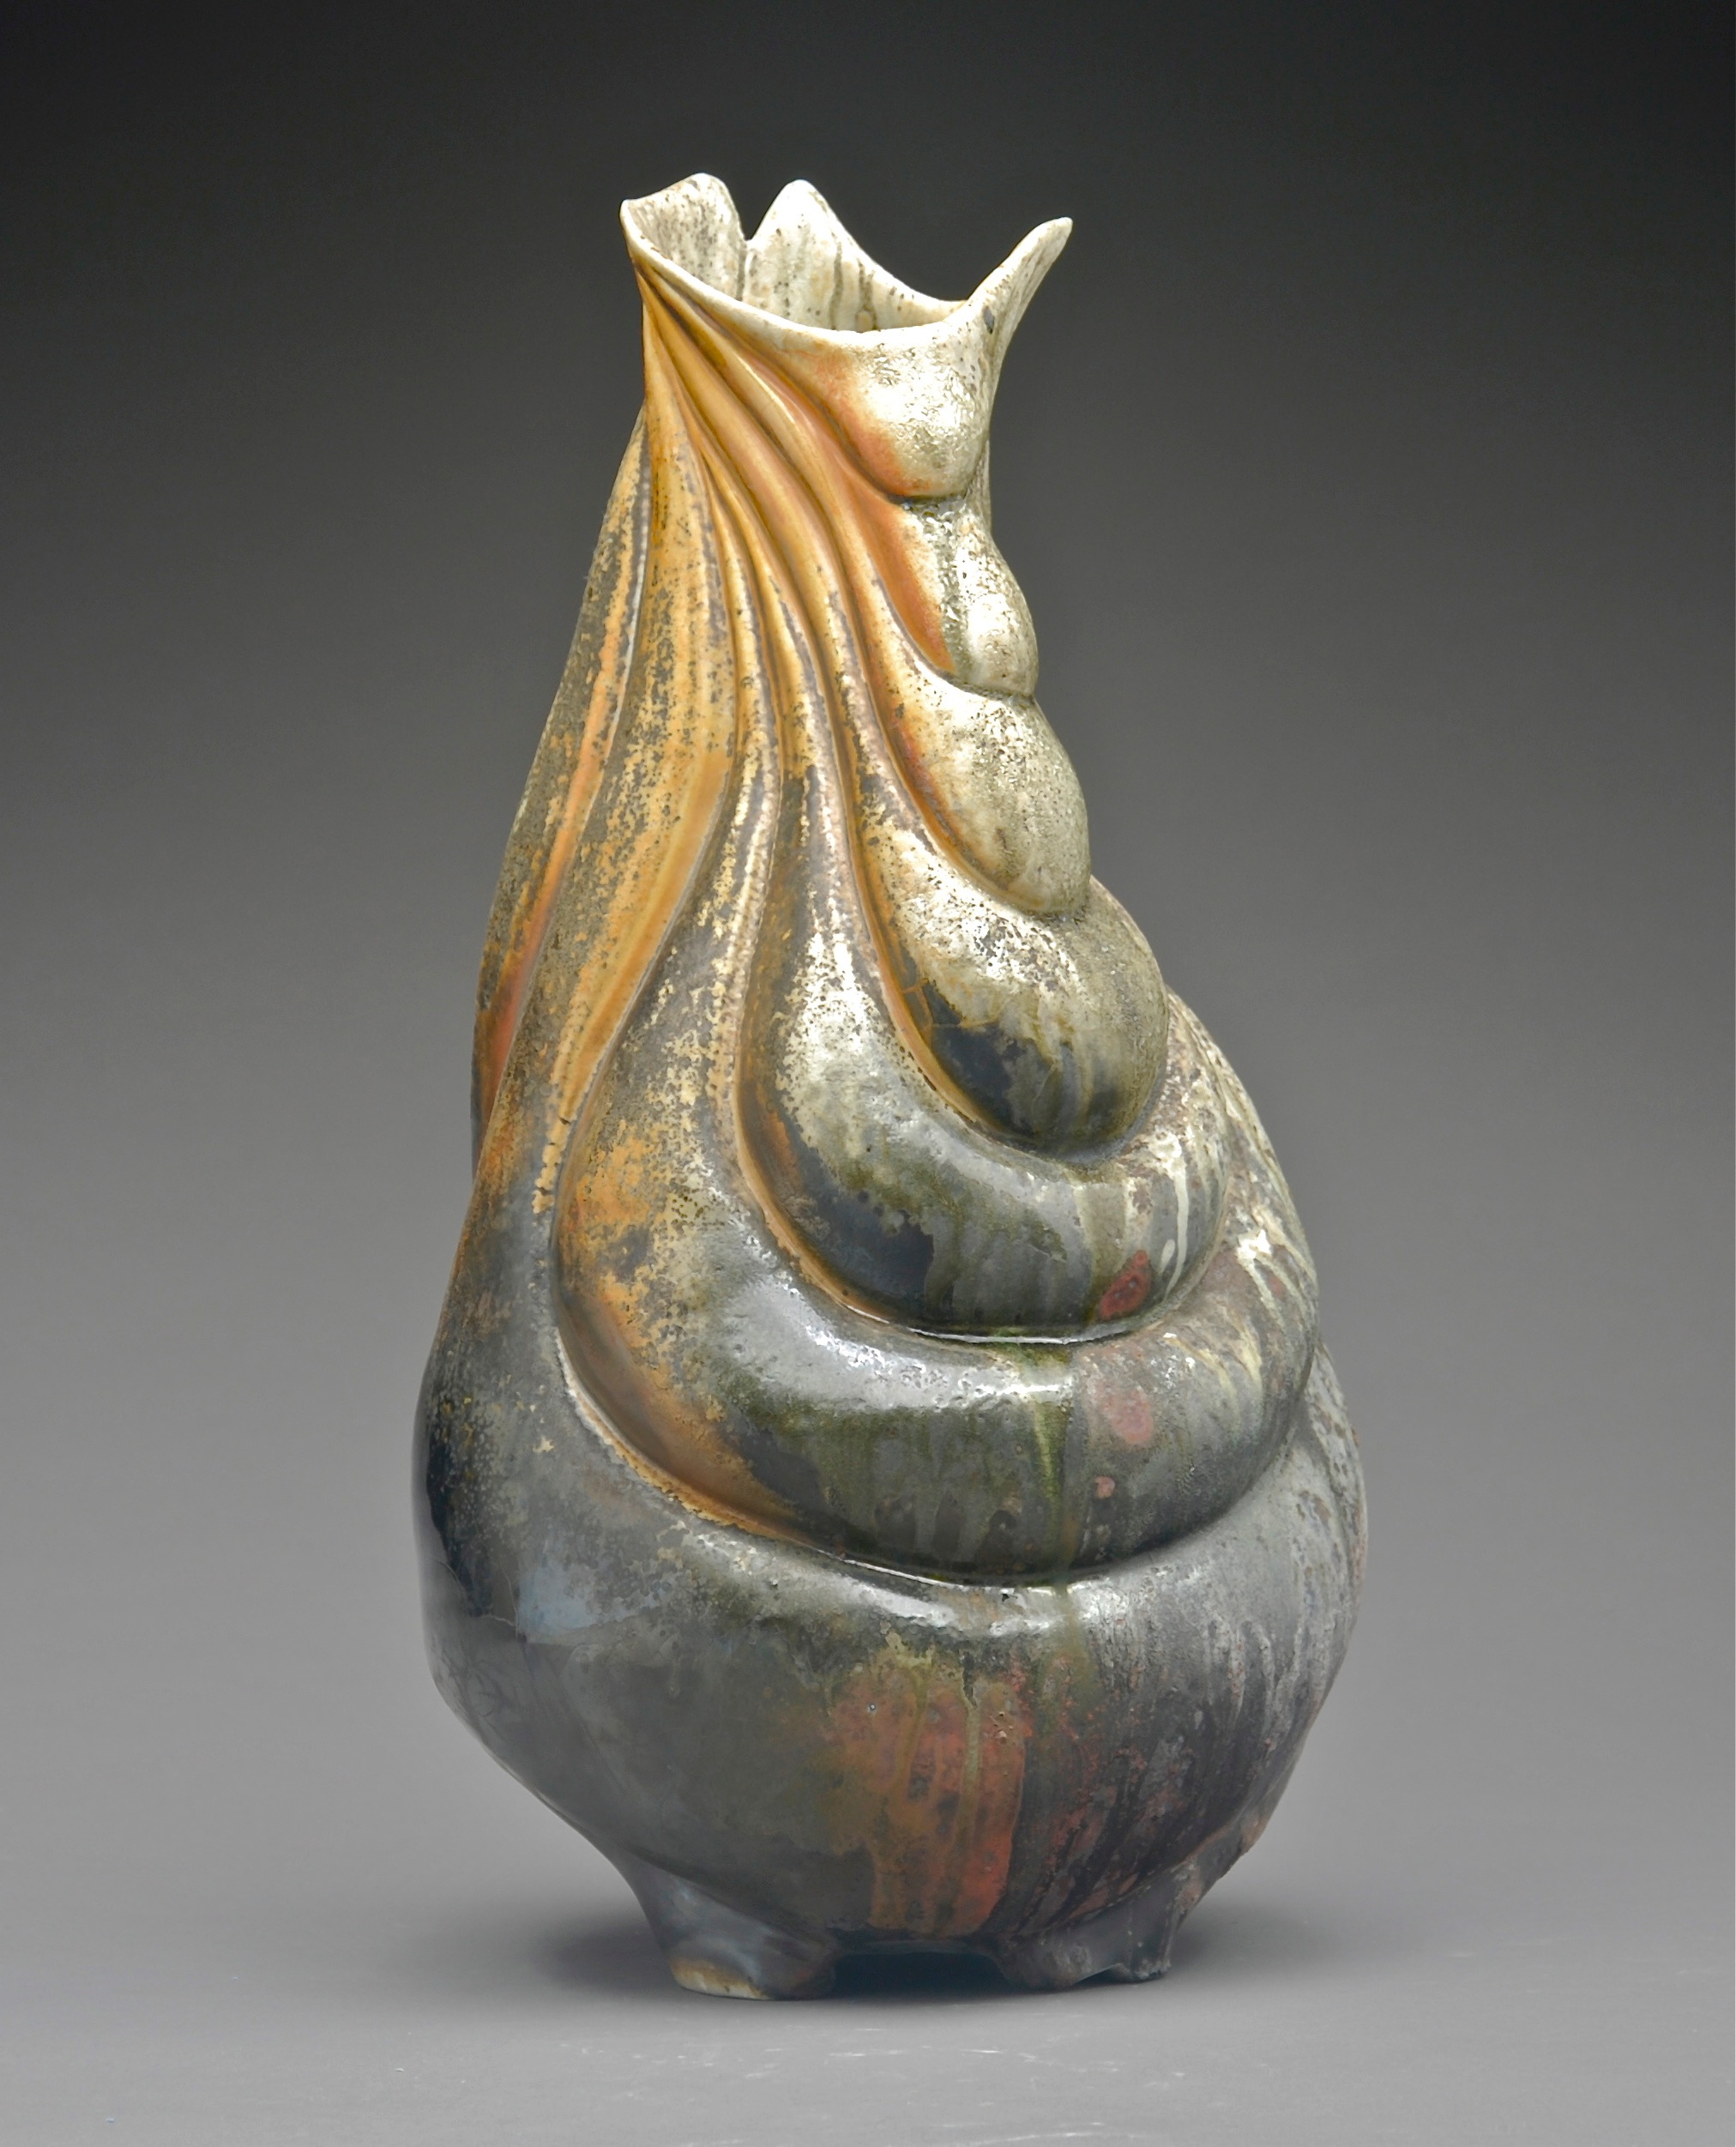 Having been raised in Willis, Hanna's heart sustains deep connection to Floyd, Virginia. Rural living propelled her curiosity of natural growth patterns and cycles of transformation. Her deep-rooted craft heritage kindles an enthrallment for traditional wood firing practices. Subtle flashes of color upon her voluptuous surfaces reveal the velocity of flame through the wood kiln, adding to the variation of each piece. Hanna's work mimics organic growth and fluid movement through her process of altering and carving wheel thrown forms. Her sculptures refer to strength and fragility of nature, imperfection and impermanence. Having lived the past 8 years in the Pacific Northwest, Hanna feels honored to show with the artists who inspired her original intrigue in clay so long ago.